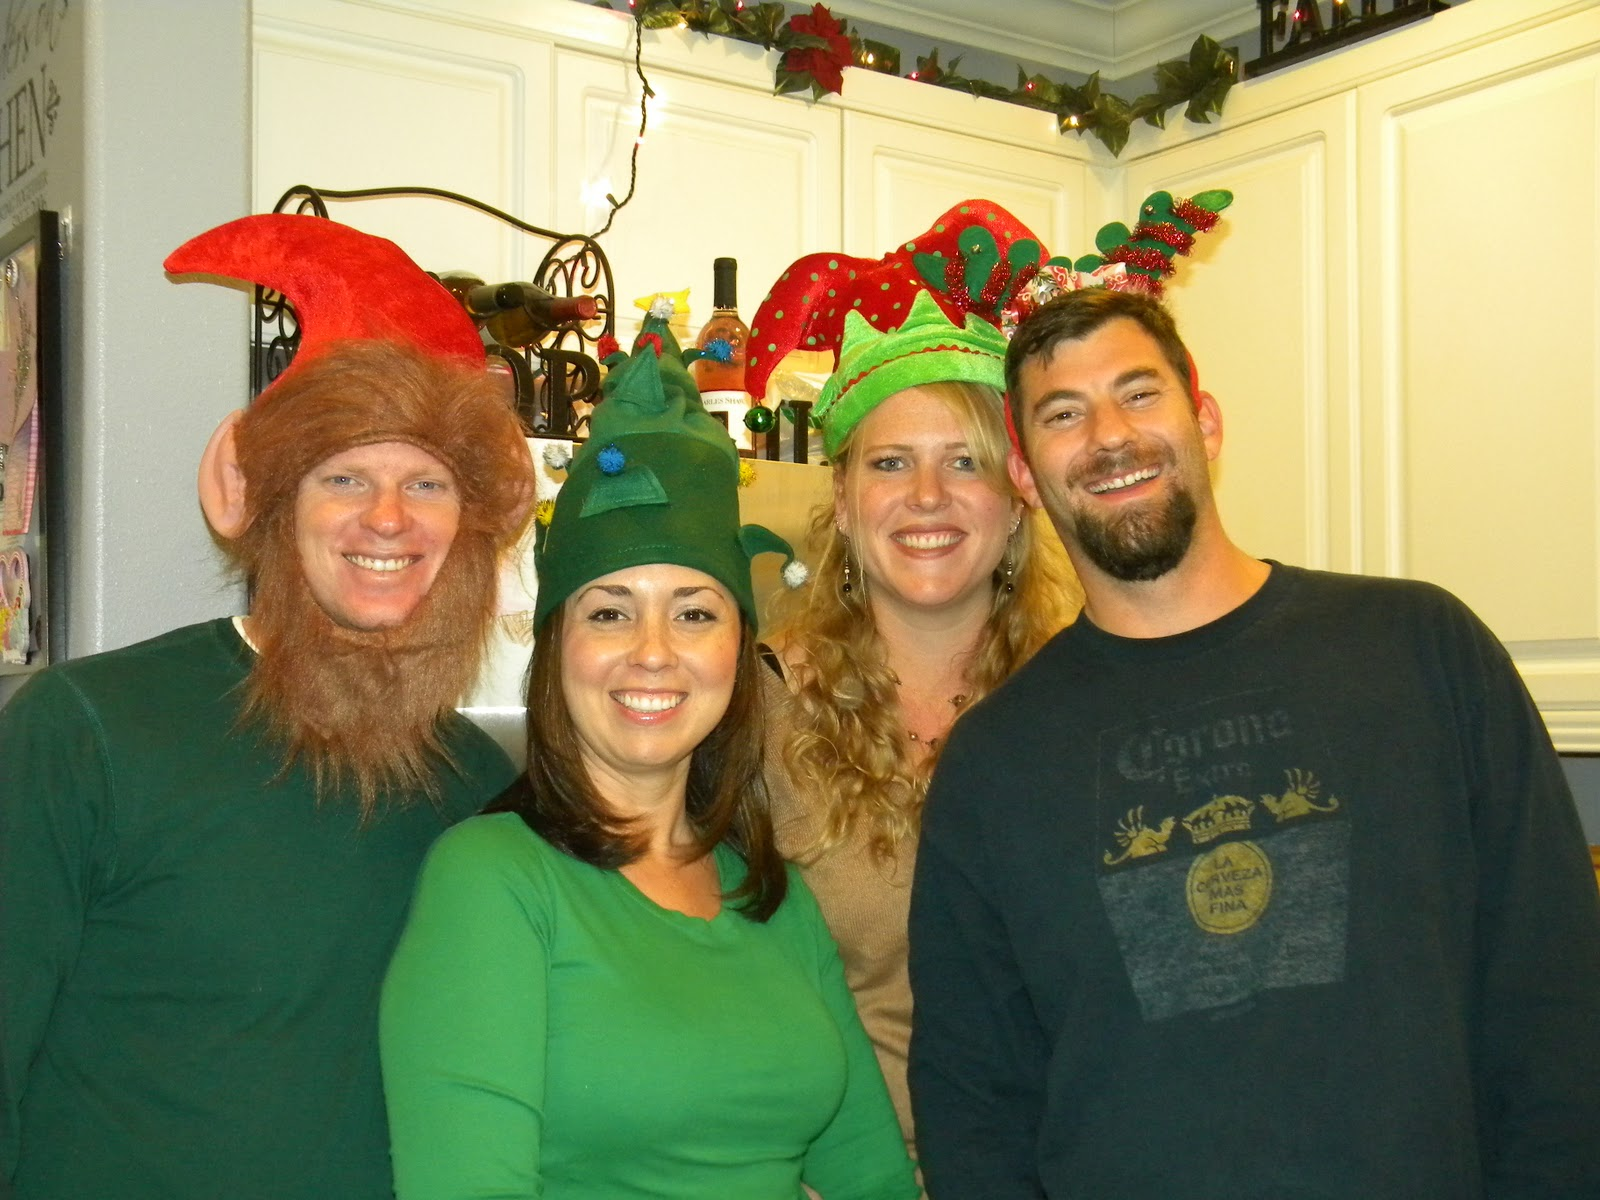 5a891a4a213f2 We hosted our 2nd annual Christmas party back on December 23rd.. We decided  our theme would be Crazy Christmas Hats! Some people definitely got a  little ...